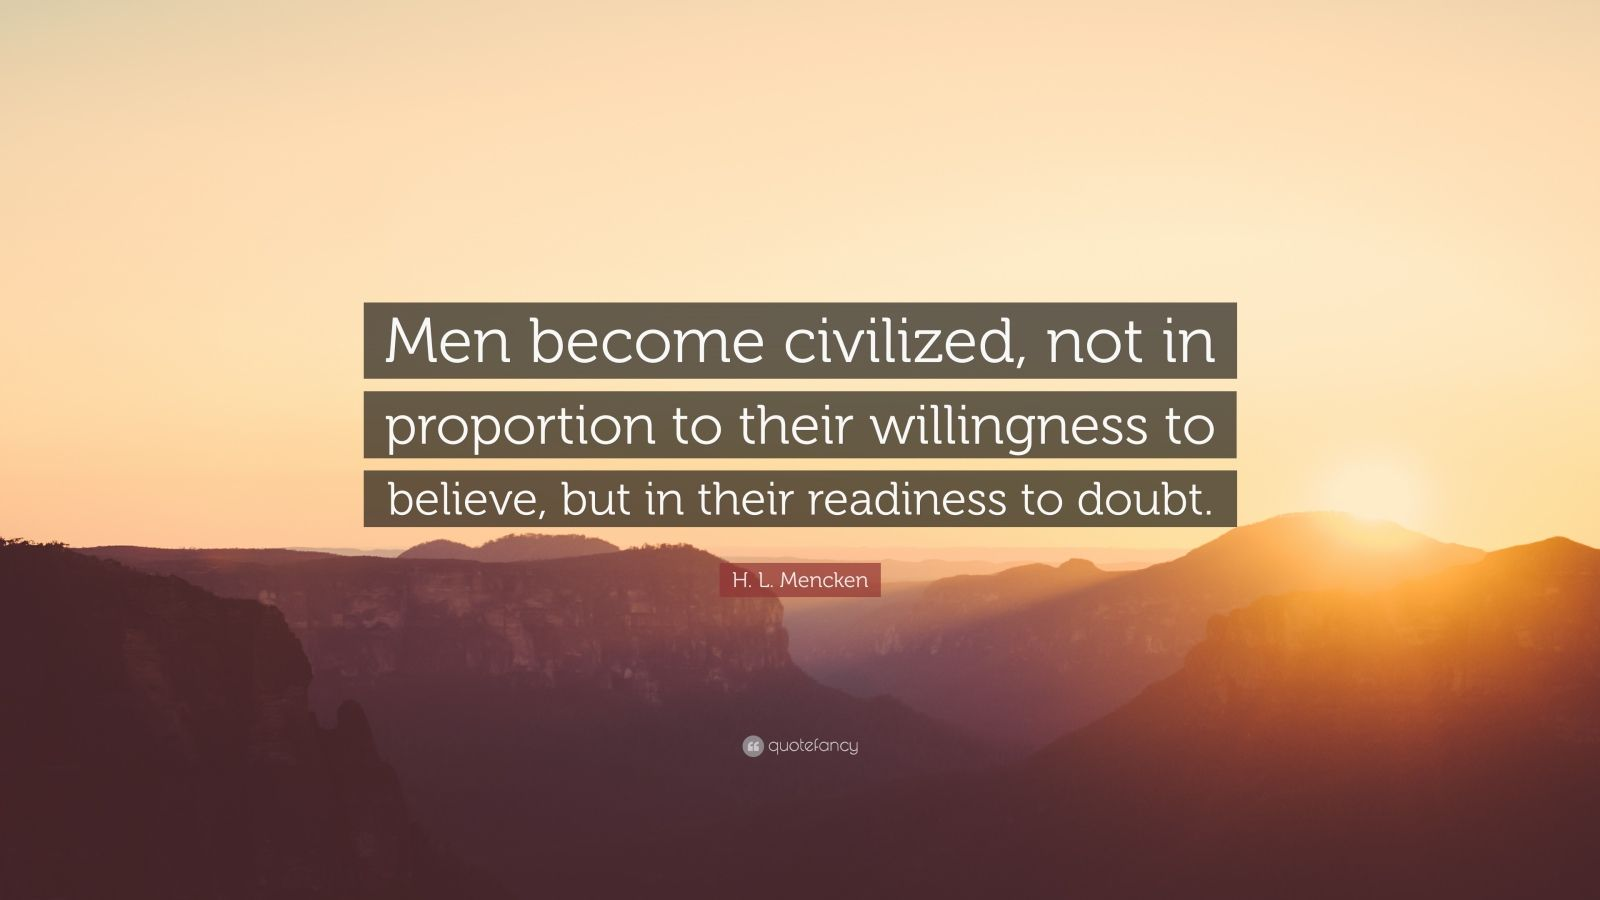 """H. L. Mencken Quote: """"Men become civilized, not in proportion to their willingness to believe, but in their readiness to doubt."""""""